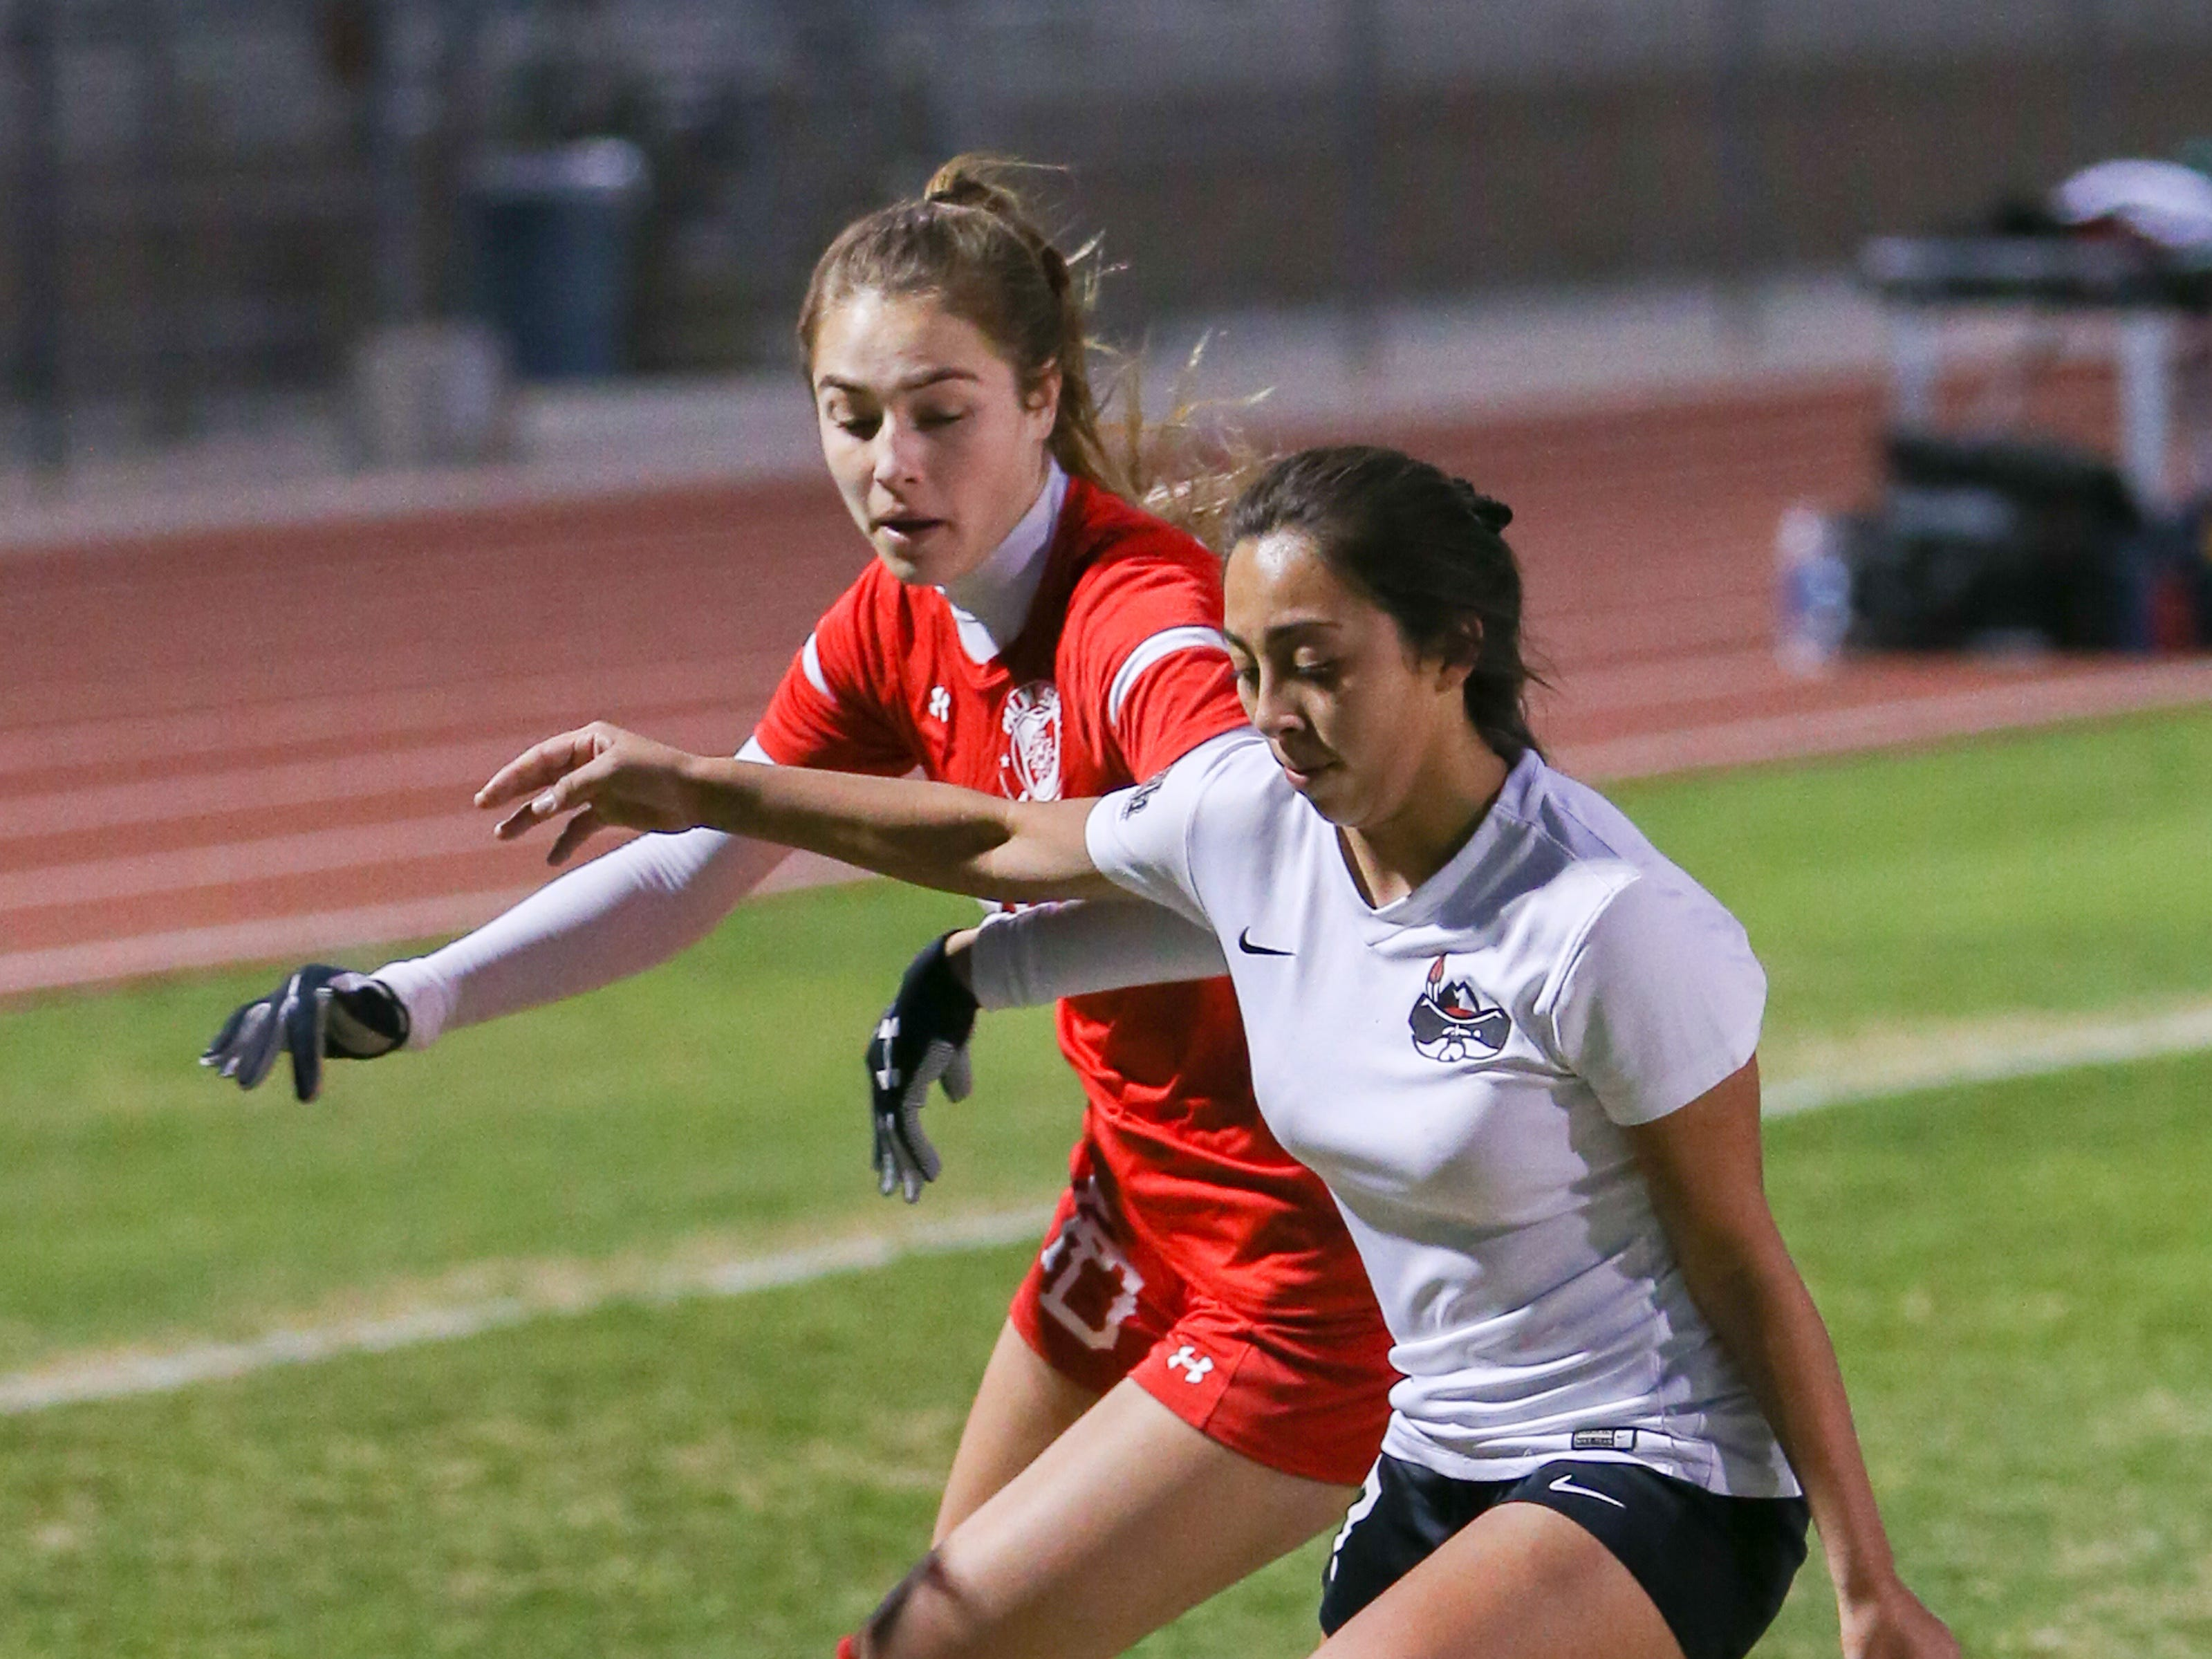 The Palm Desert varsity soccer team won Wednesday's home playoff game against Miller by a score of 5-1.